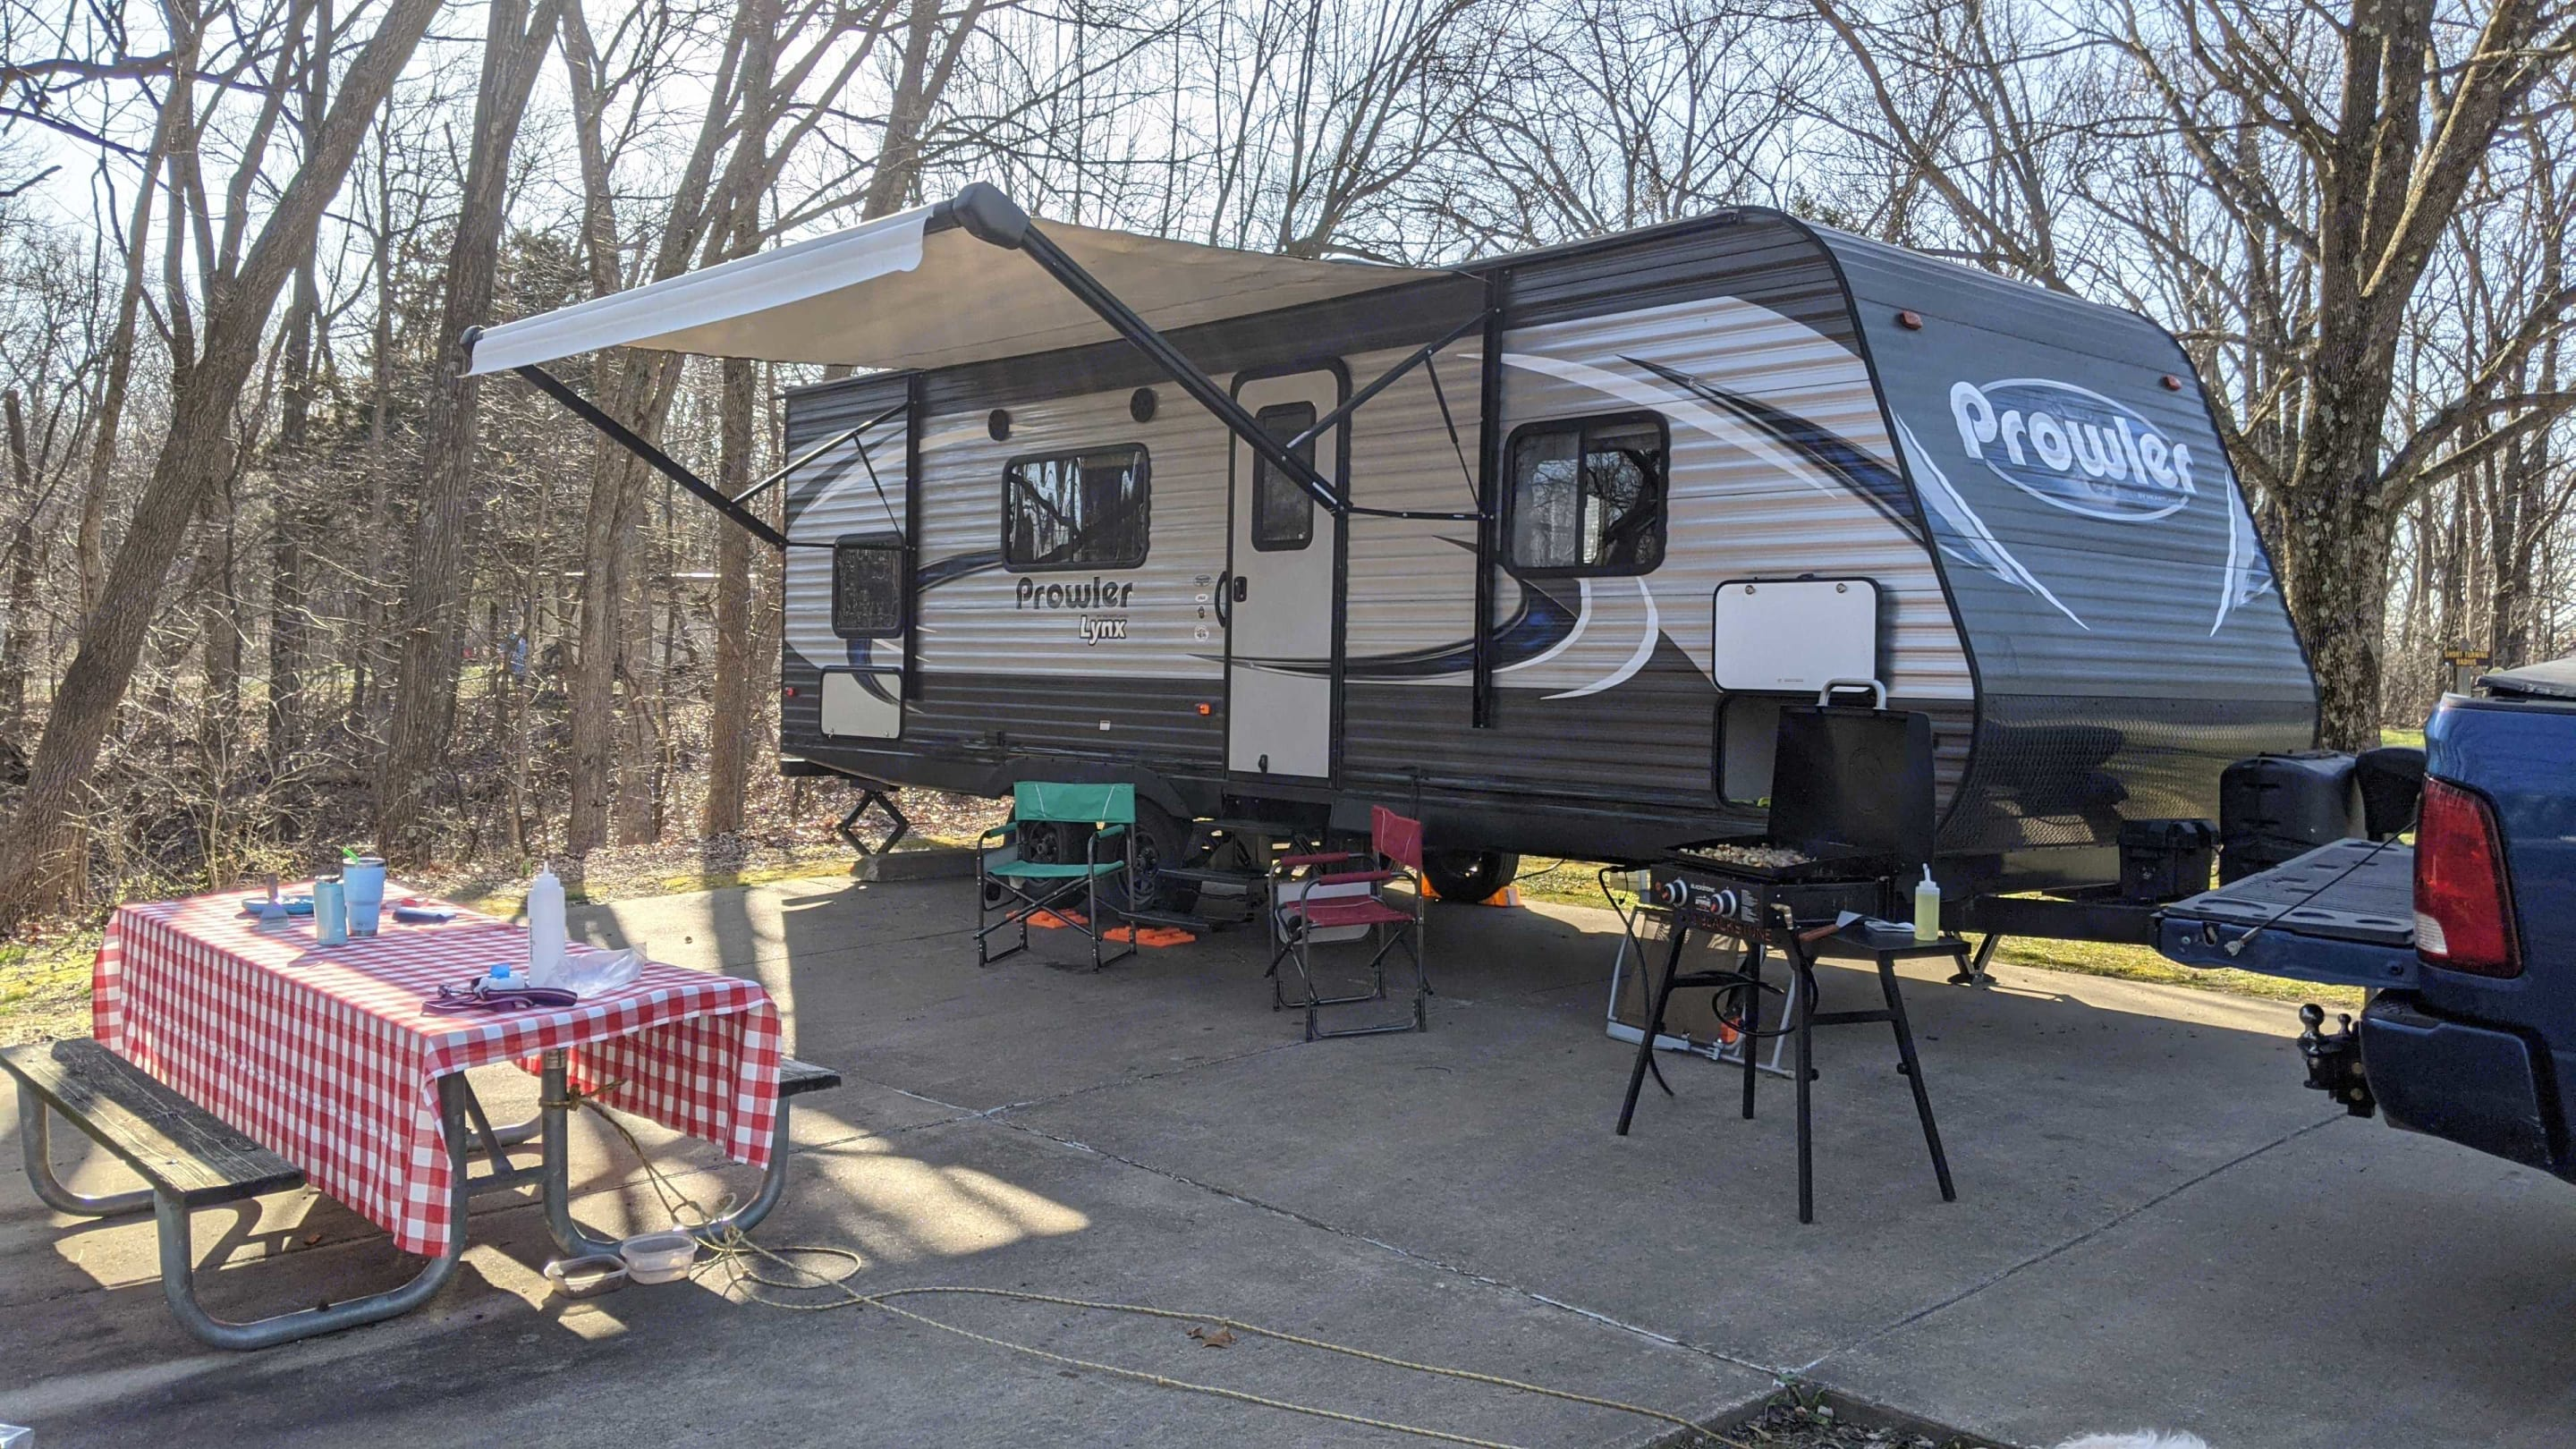 Ready for your relaxing weekend adventure.. Heartland Prowler Lynx 2018